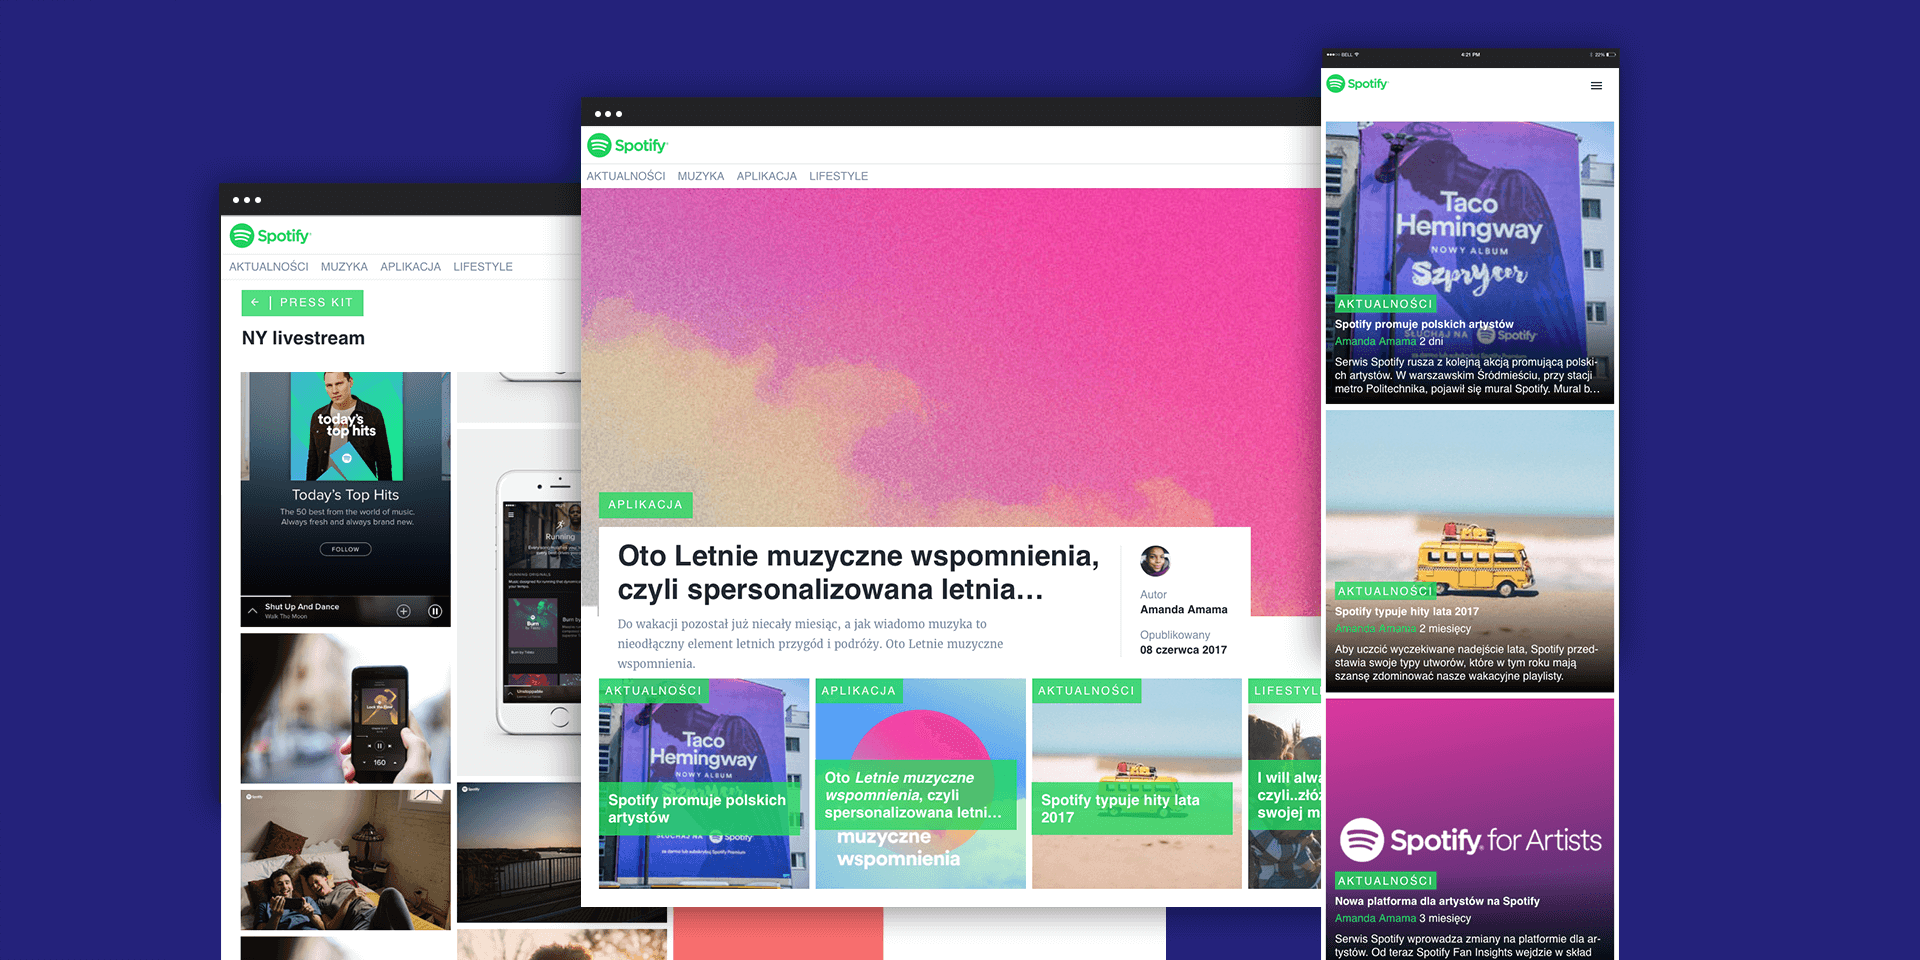 Spotify Launches the First Prowly Brand Journal in Poland